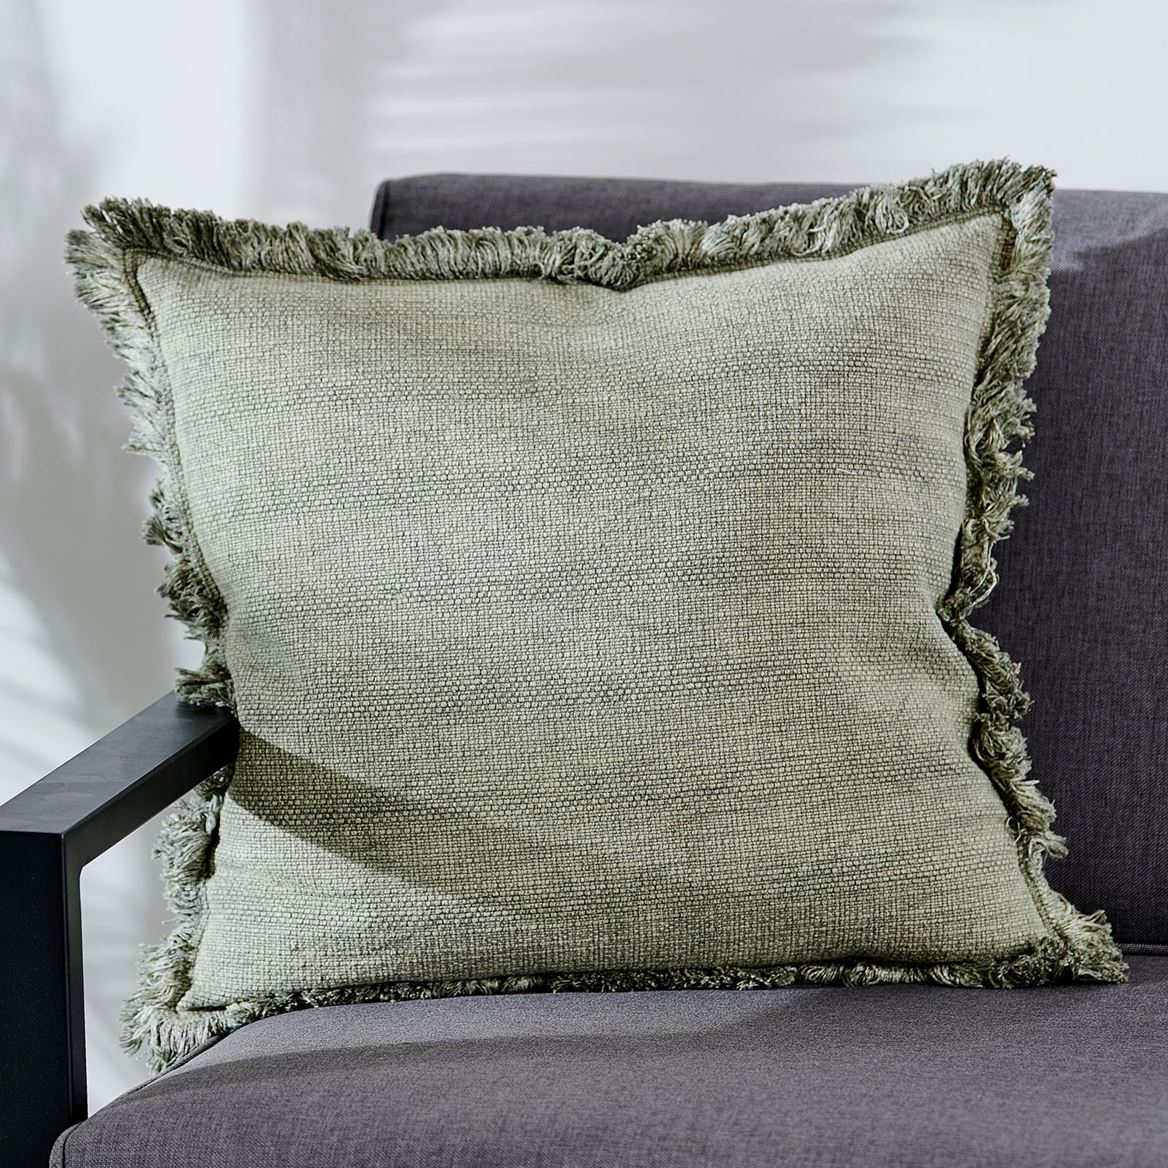 FROW Coussin vert Larg. 45 x Long. 45 cm_frow-coussin-vert-larg--45-x-long--45-cm